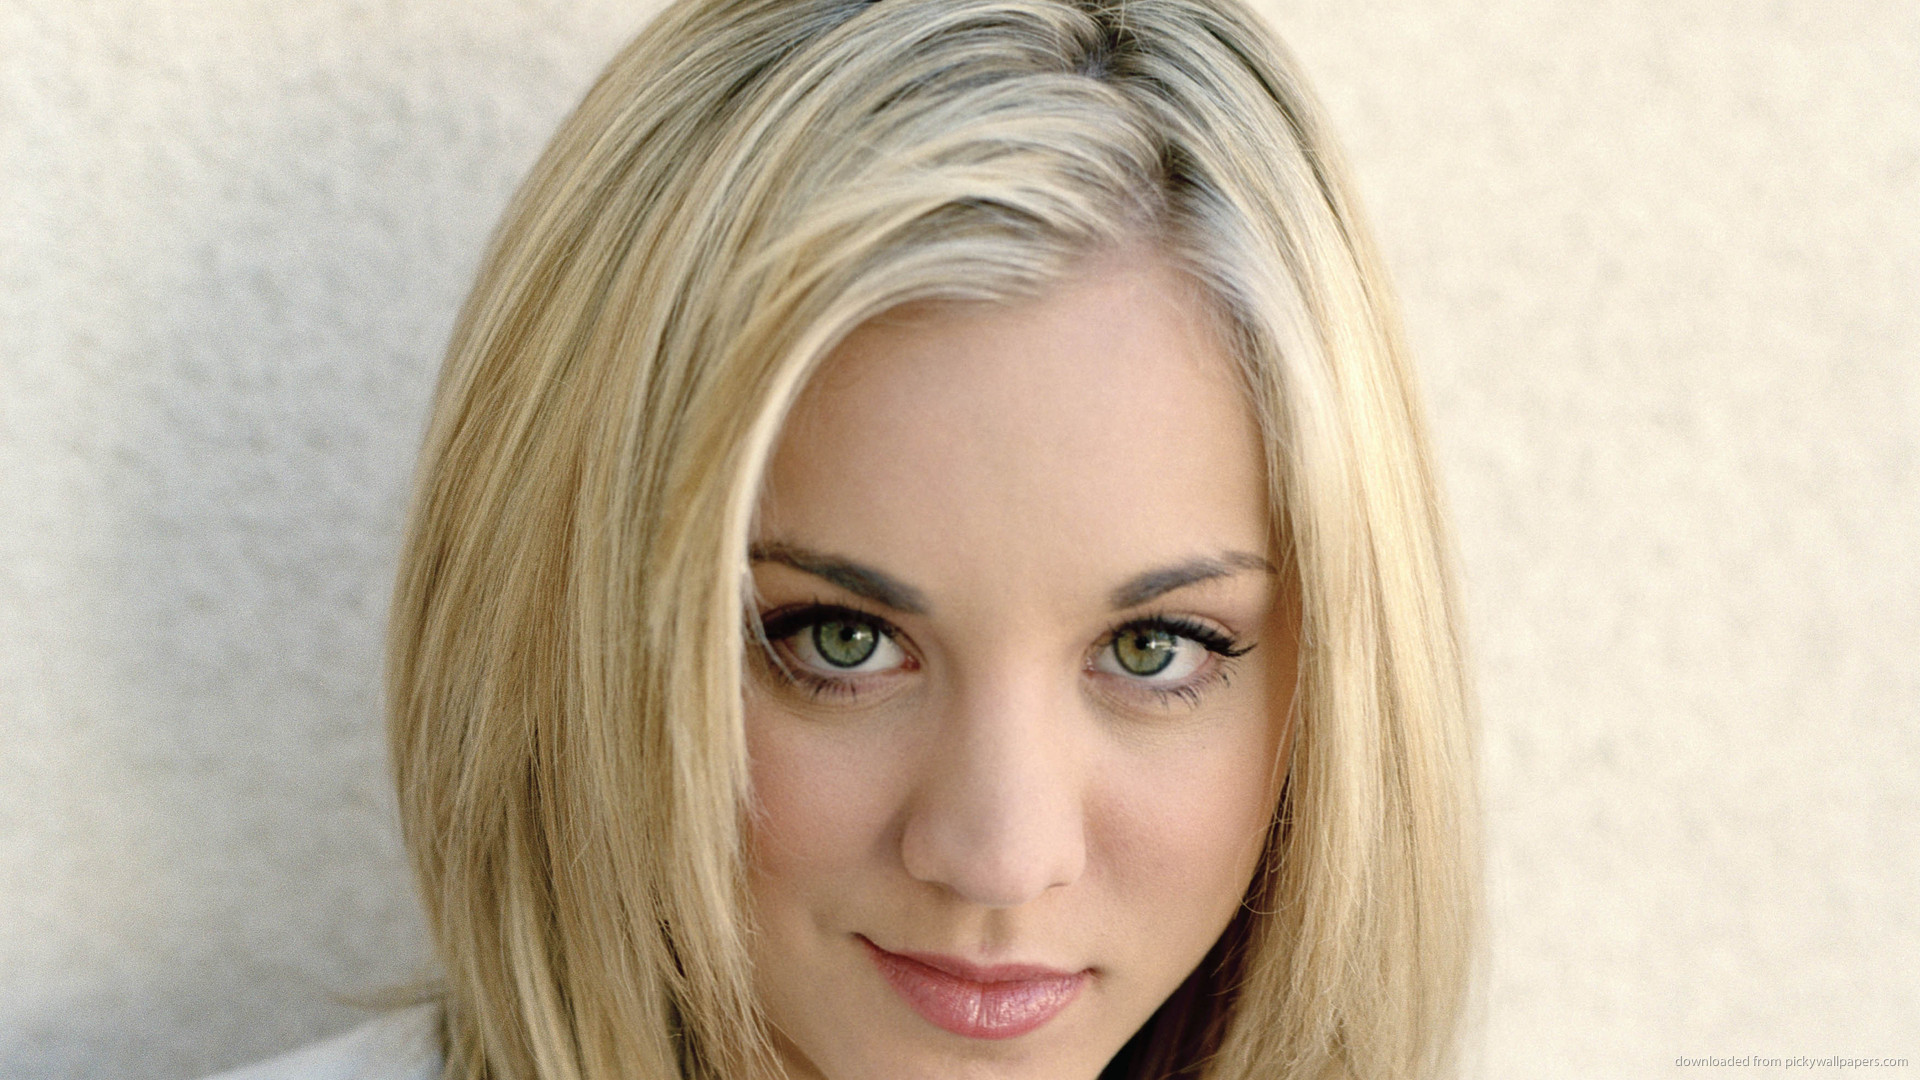 Blonde Kaley Cuoco Picture Data Src Womens Choppy Layered Hairstyles 1920x1080 Download Hd Wallpaper Wallpapertip